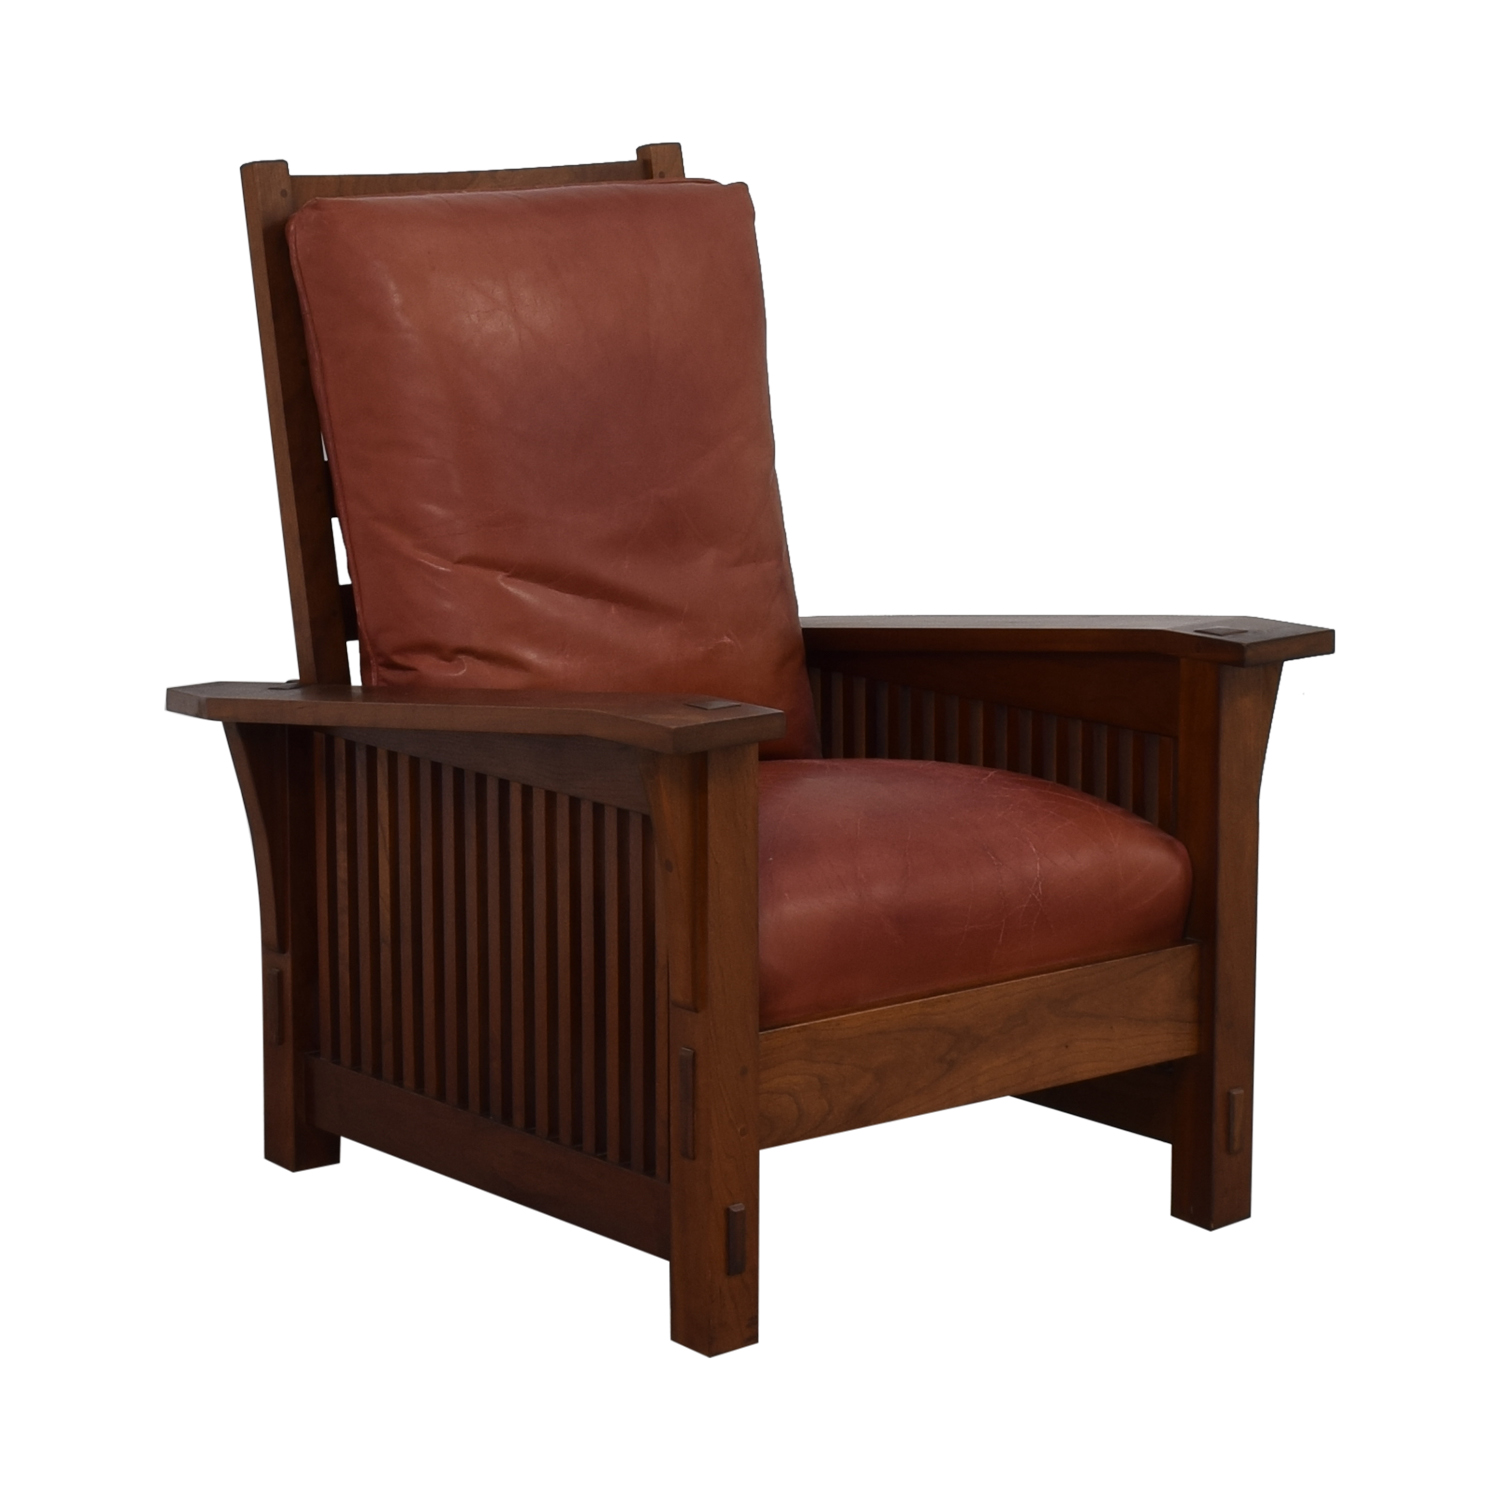 buy Stickley Spindle Morris Chair Stickley Furniture